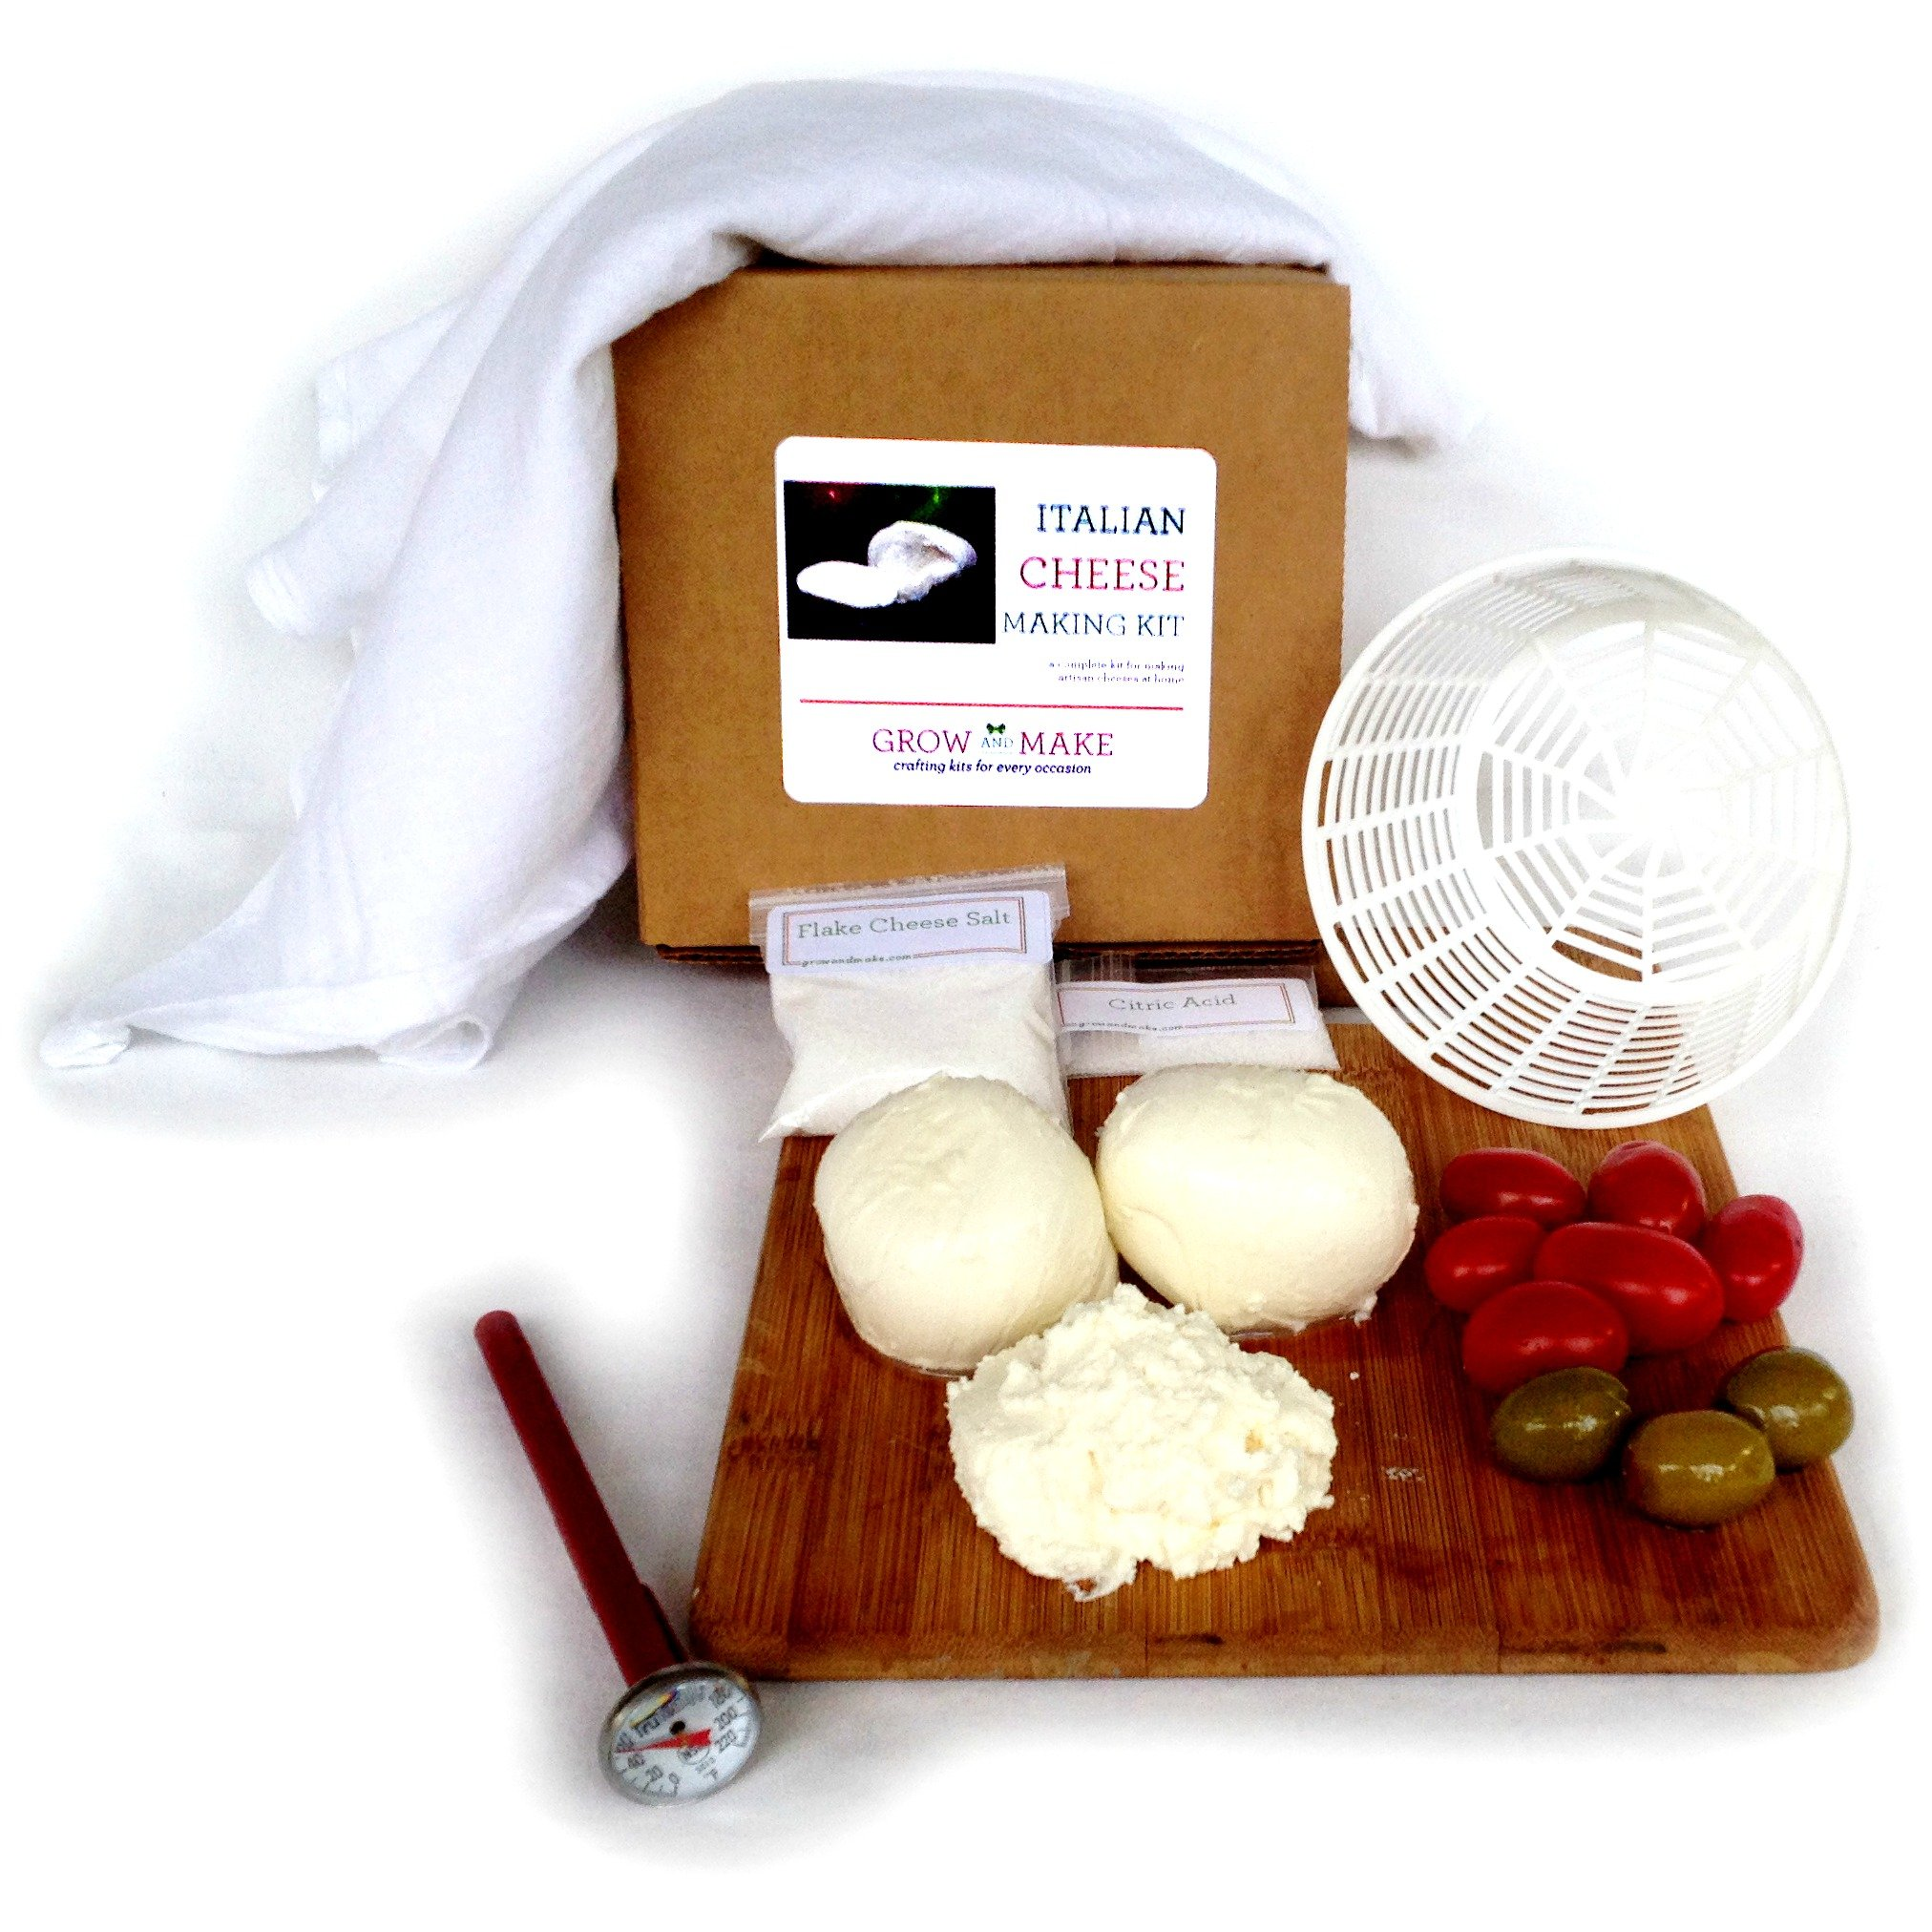 DIY Italian Cheese Making Kit - Learn how to make home made mozzarella and ricotta cheeses